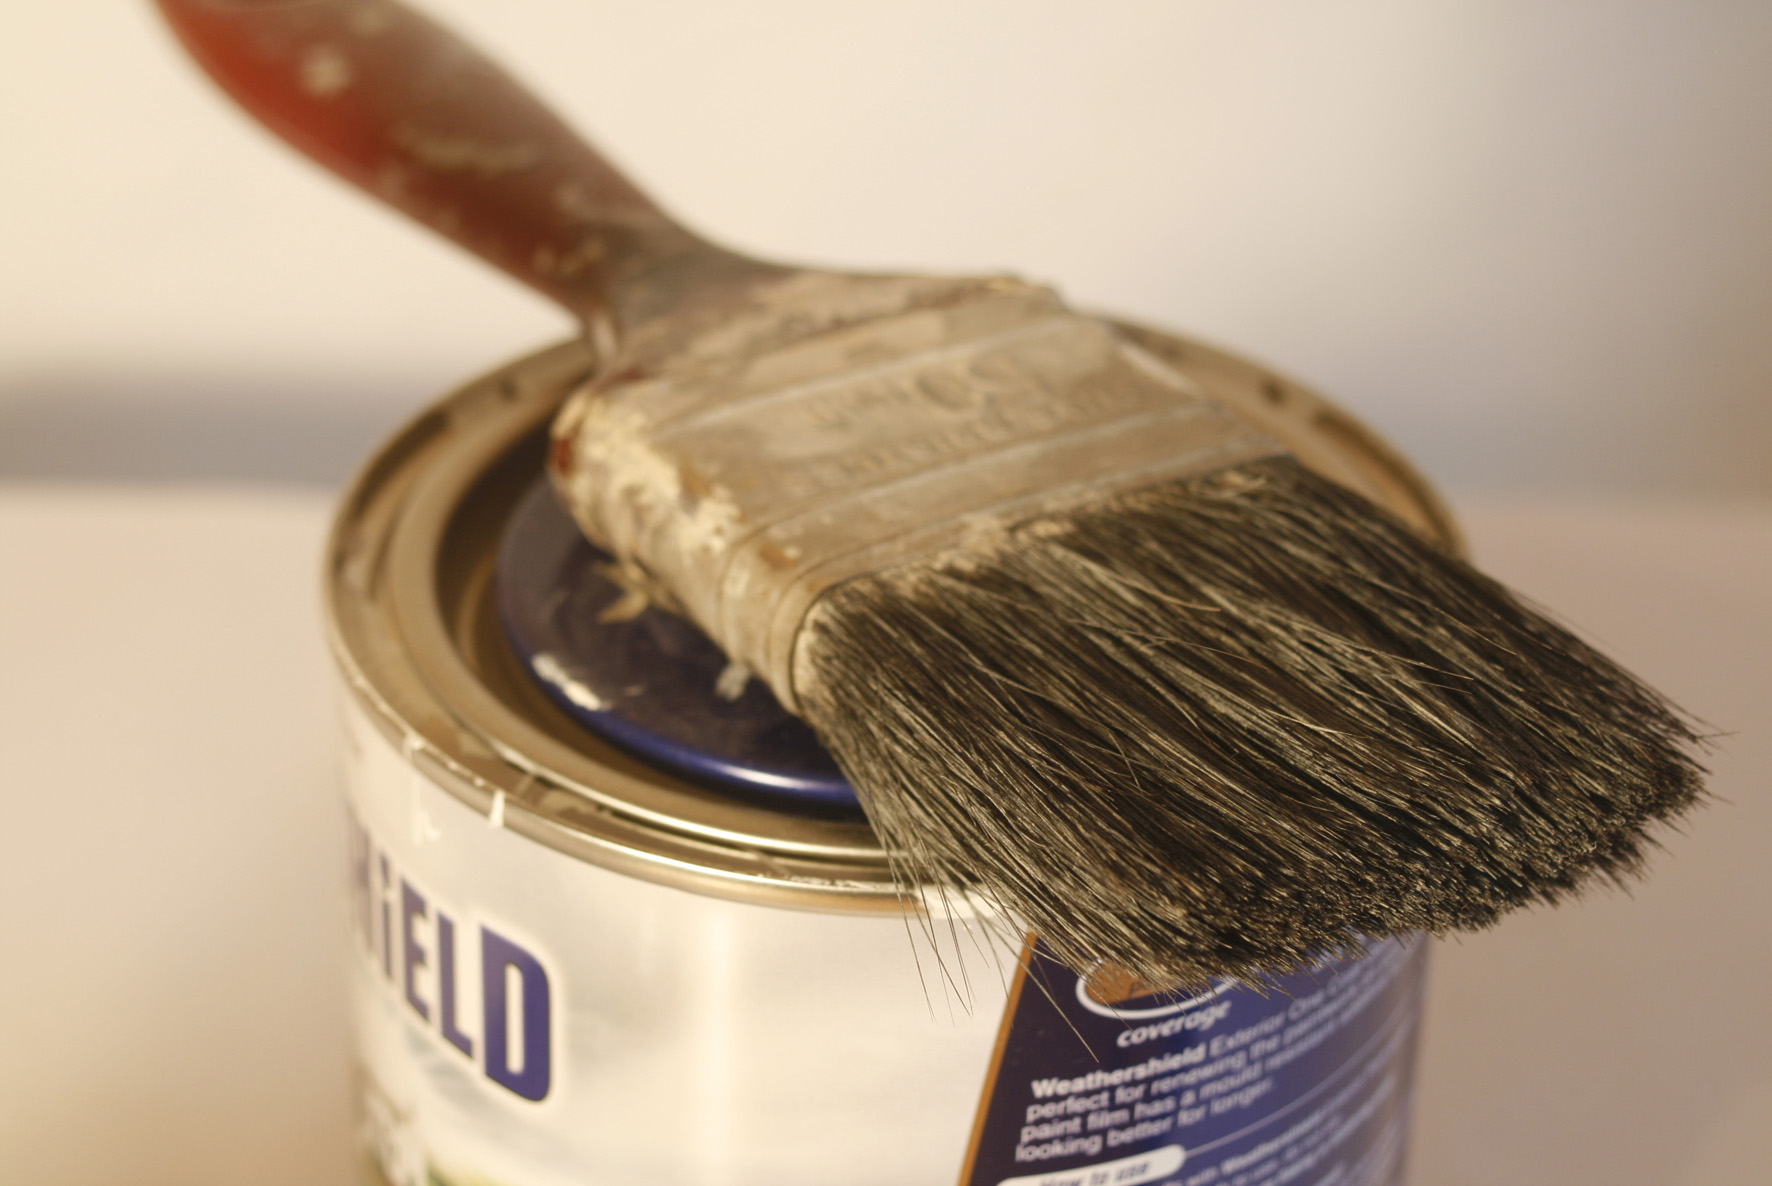 Photograph of a paintbrush on top of a paint can.